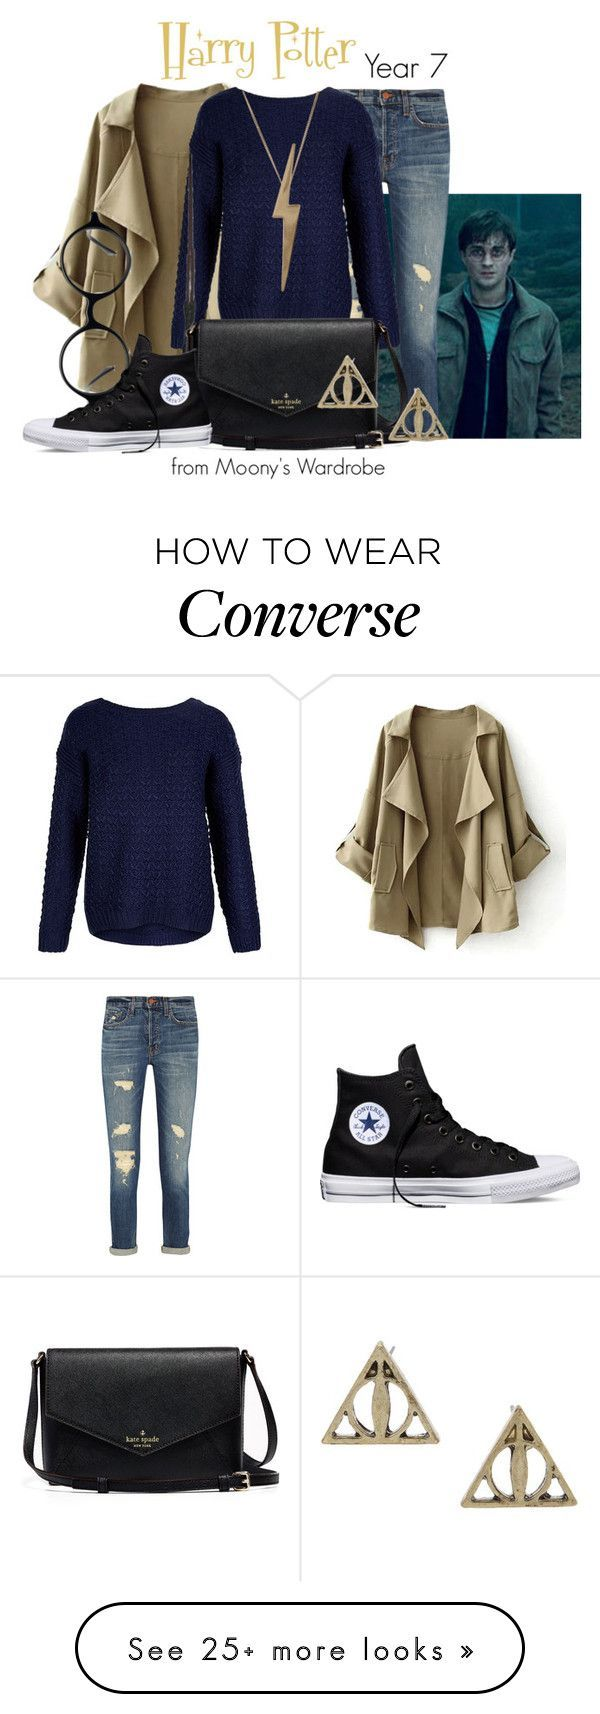 820215717c9 100 Fashion Outfits to 2017 Ideas